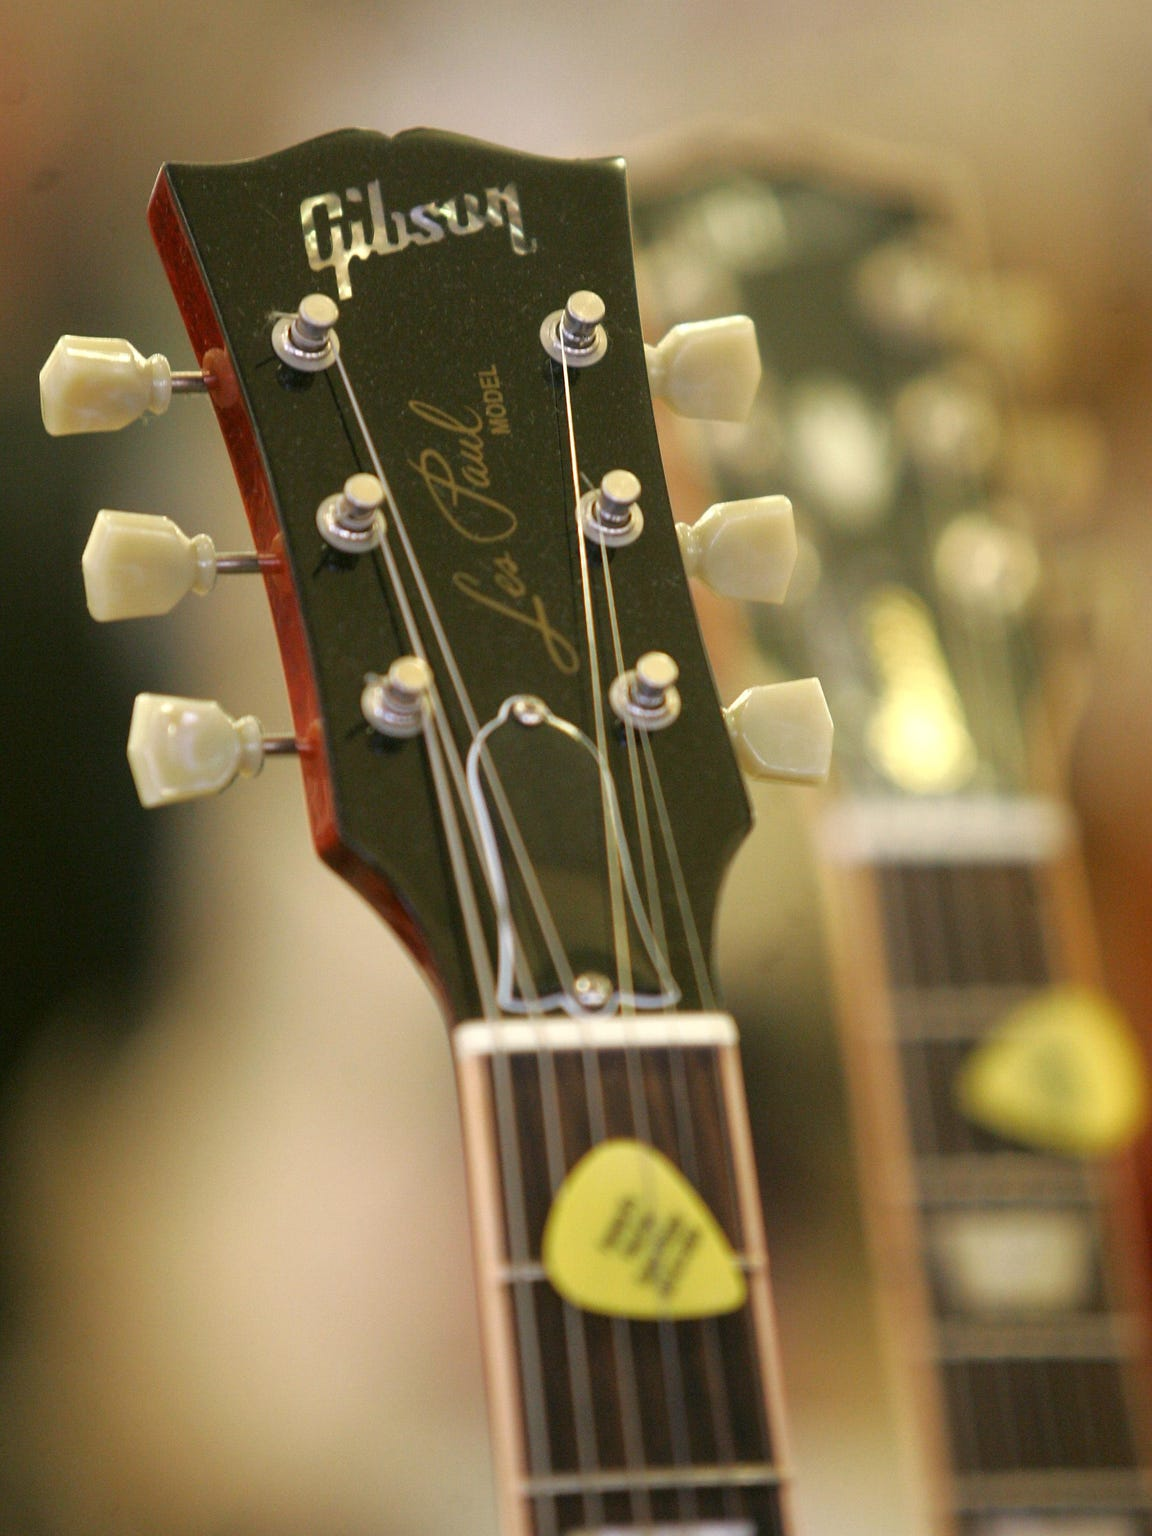 Les Paul A Legend Rooted In New Jersey Gibson Premium Wiring Diagram Annual Guitar Show At Brookdale Community College Fundraiser For Their Public Broadcasting Radio Station 905fm The Headstock Of